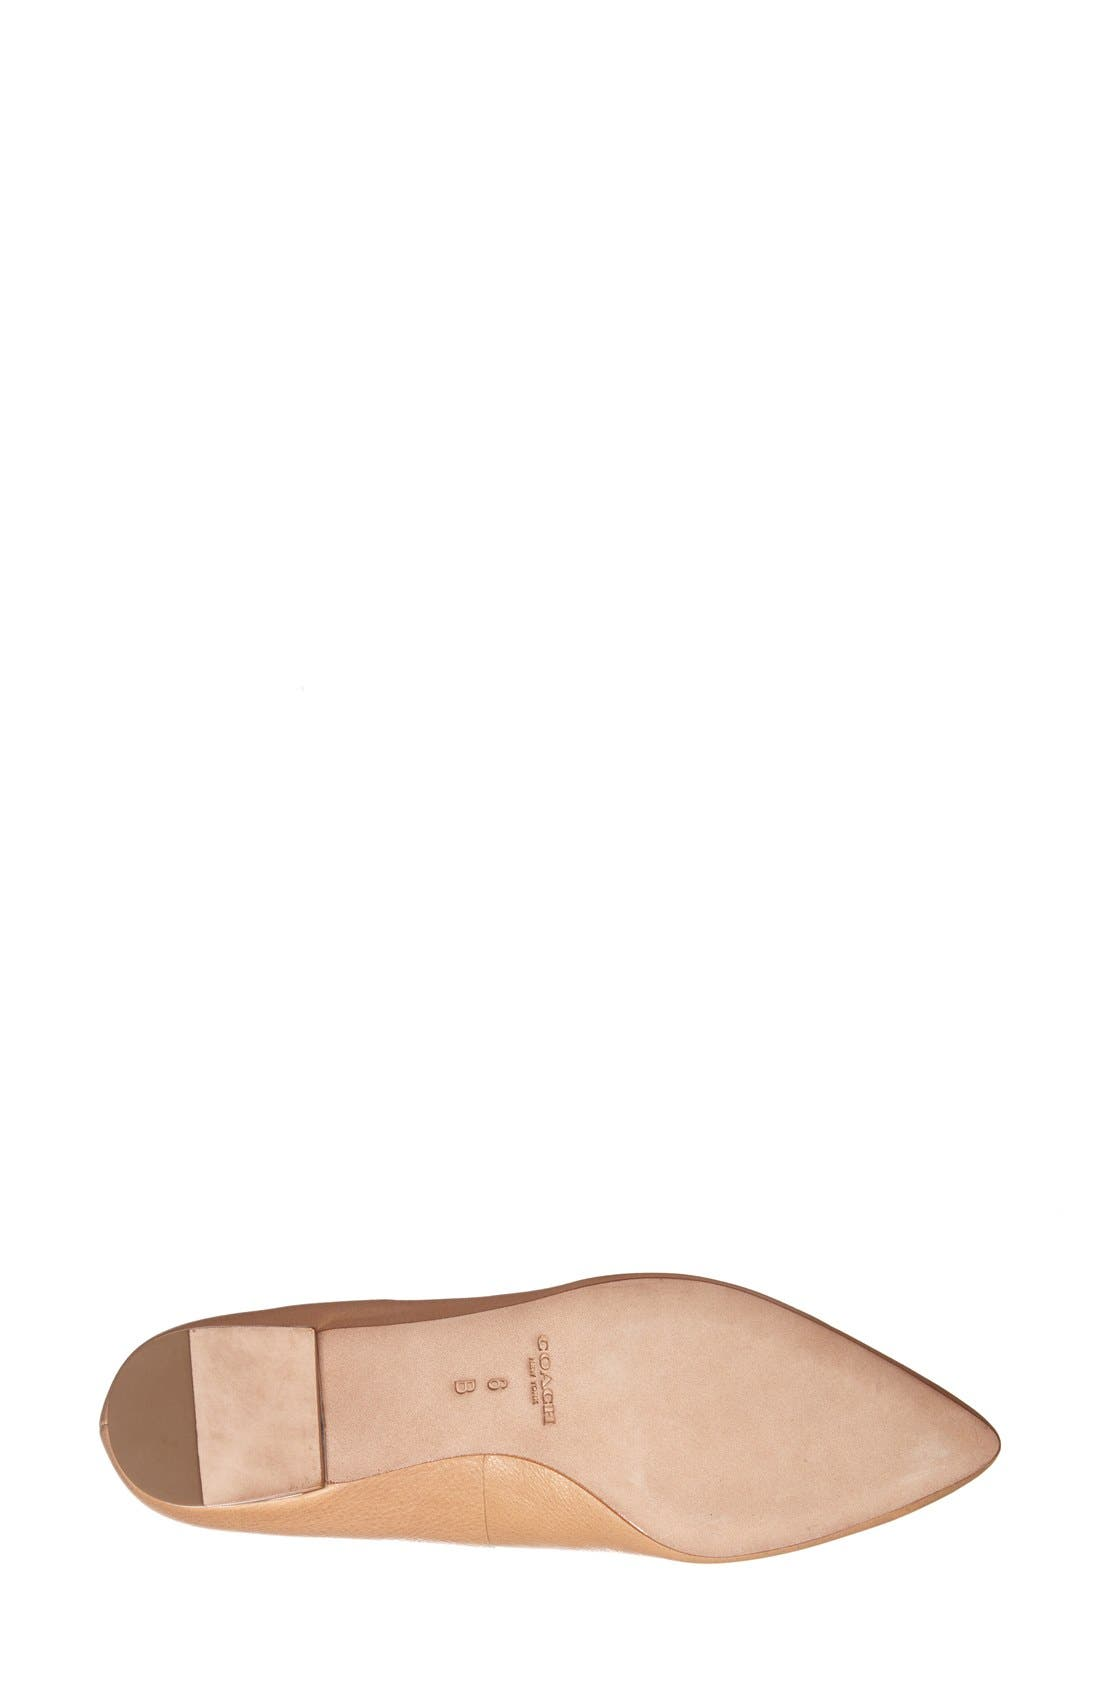 Alternate Image 4  - COACH 'Walsh' Leather Loafer (Women)